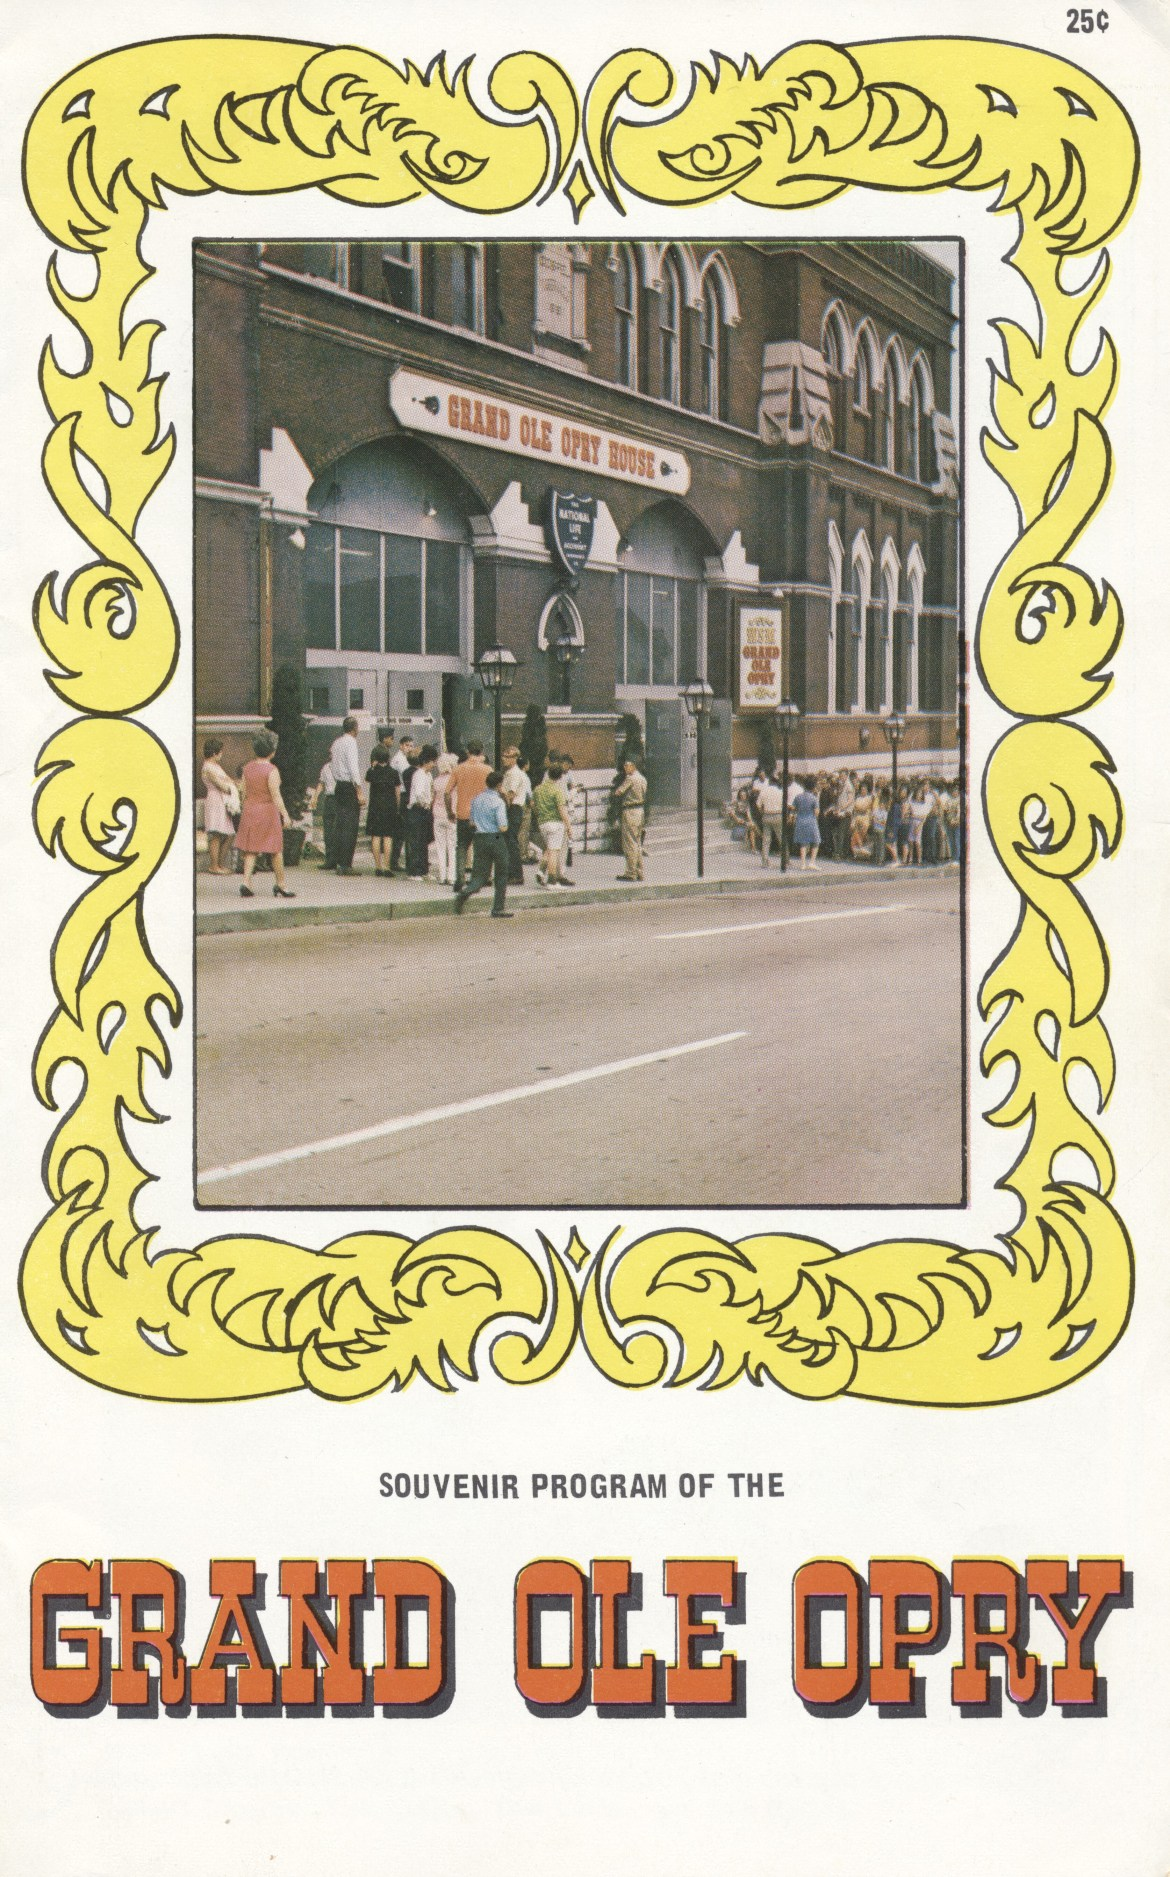 1970 Souvenir Program of The Grand Ole Opry